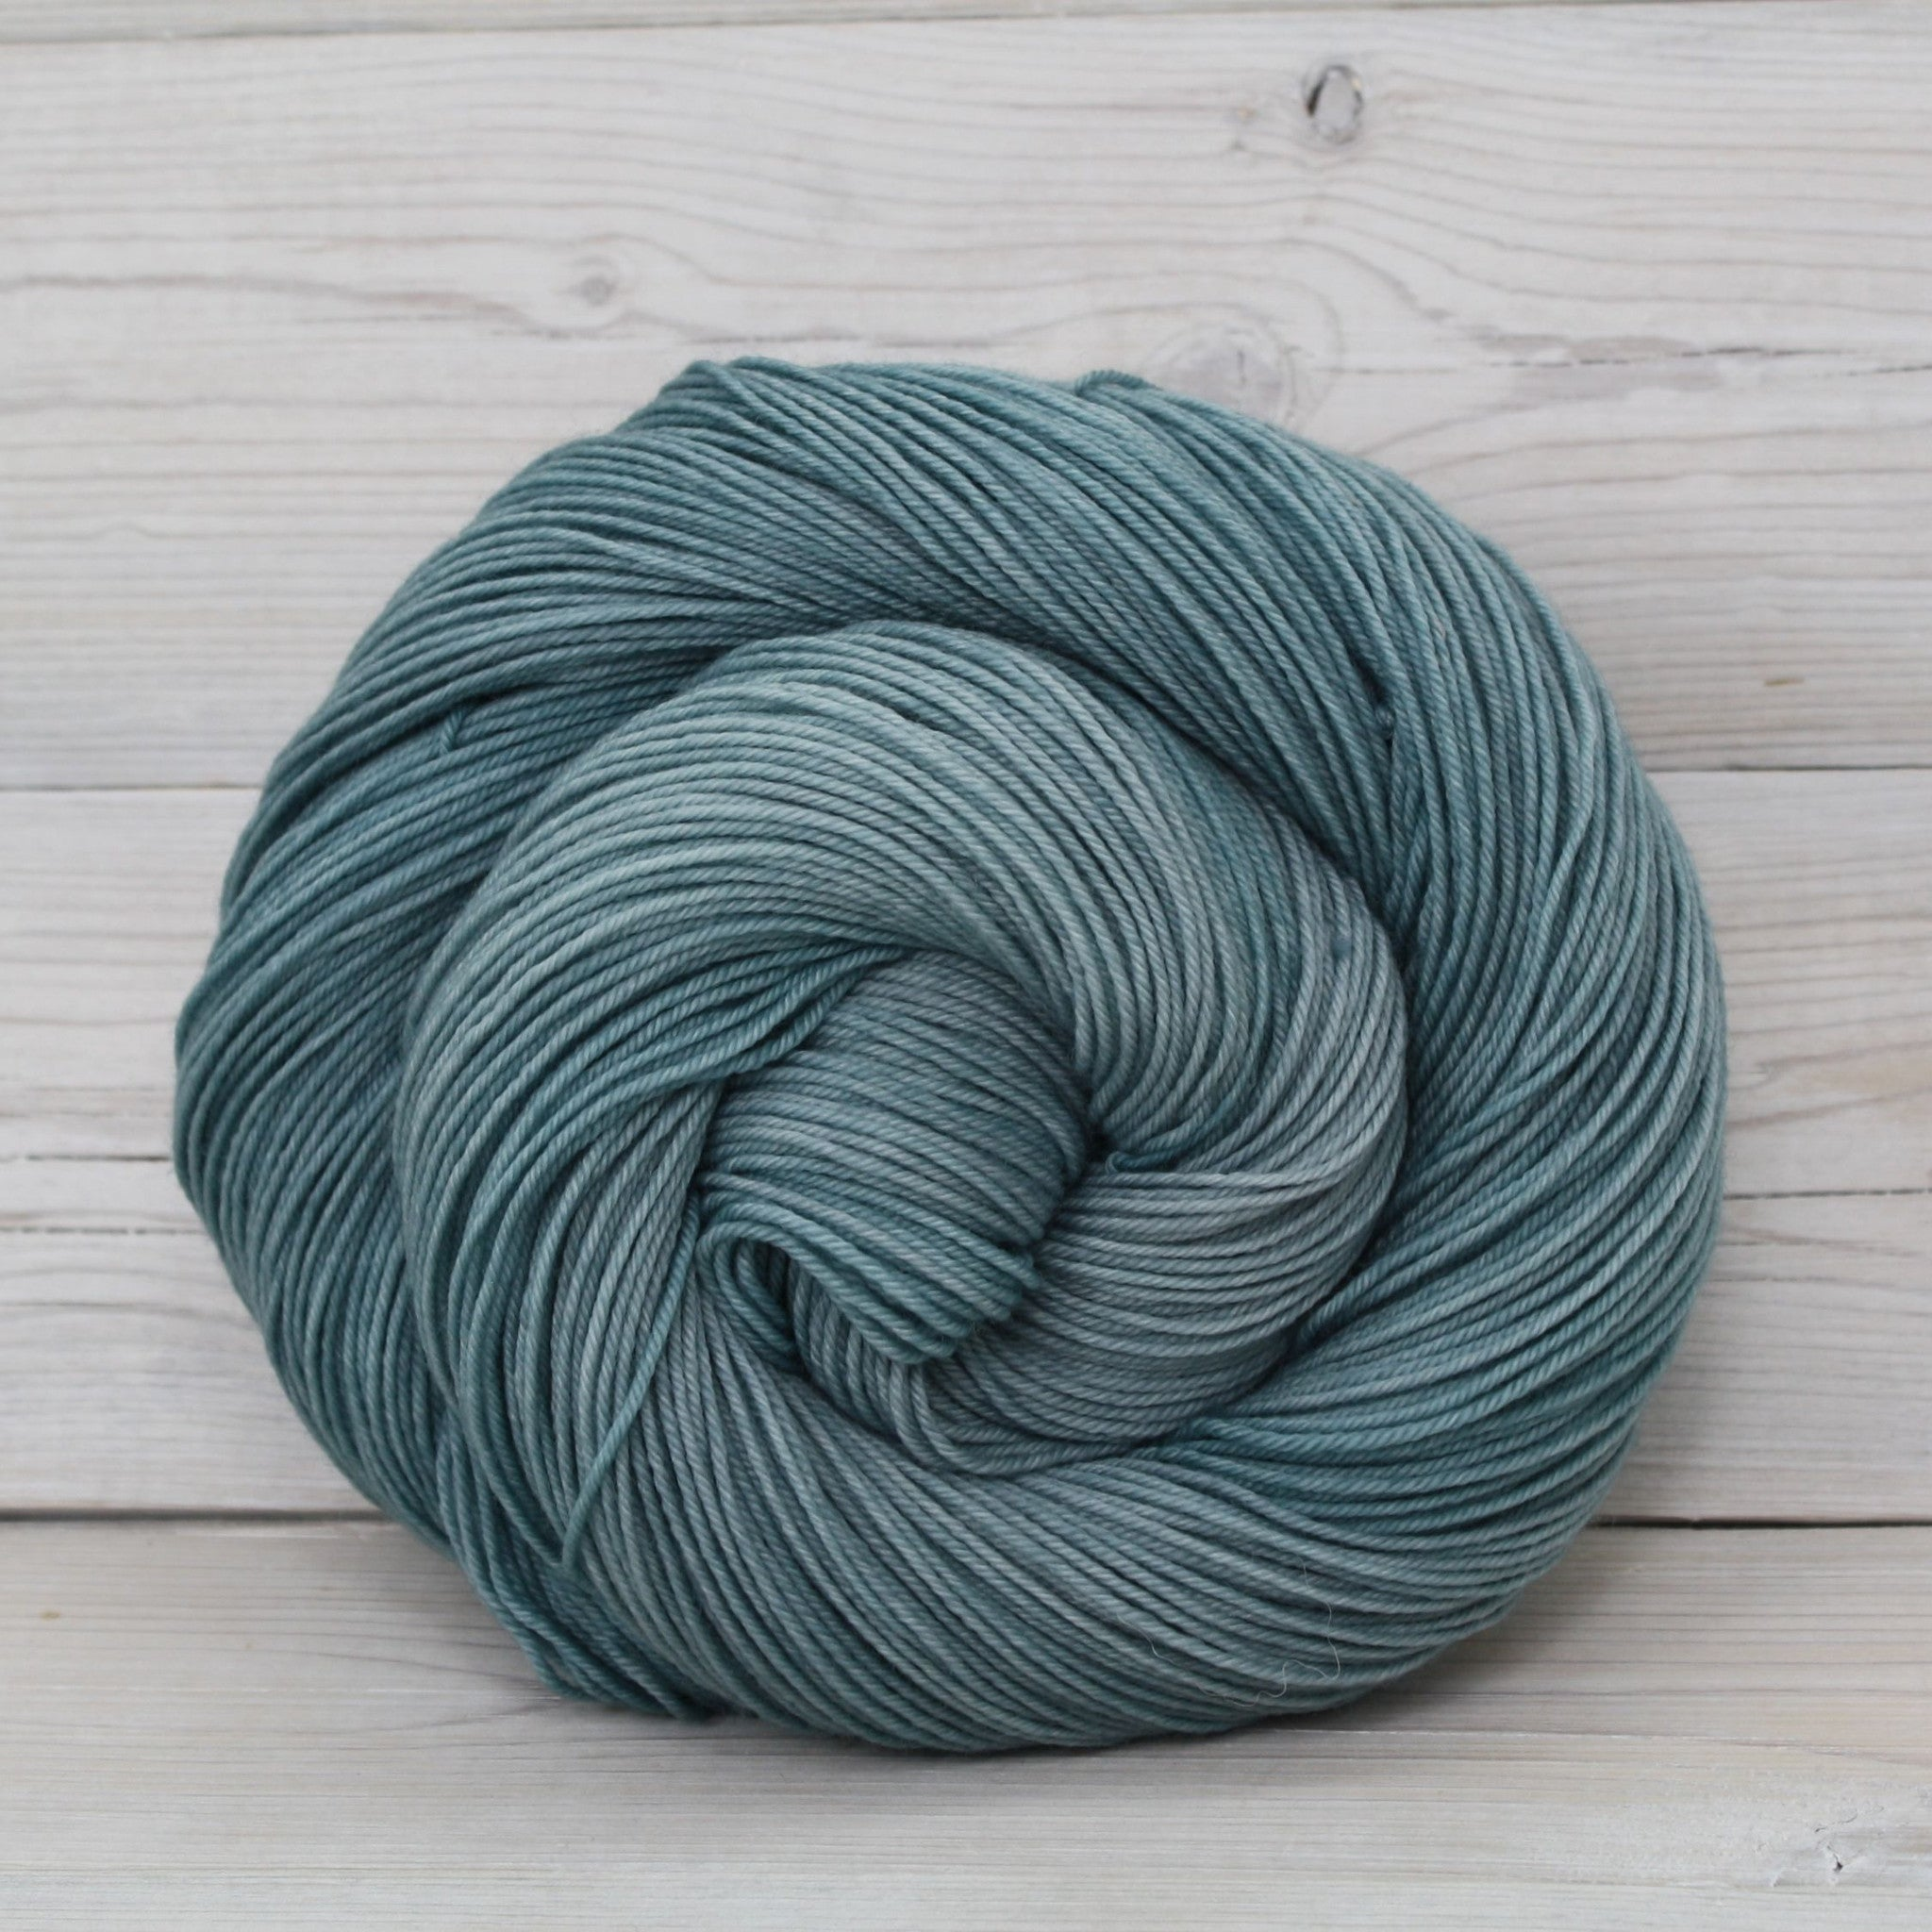 Luna Grey Fiber Arts Athena Sock Yarn | Colorway: Harbor